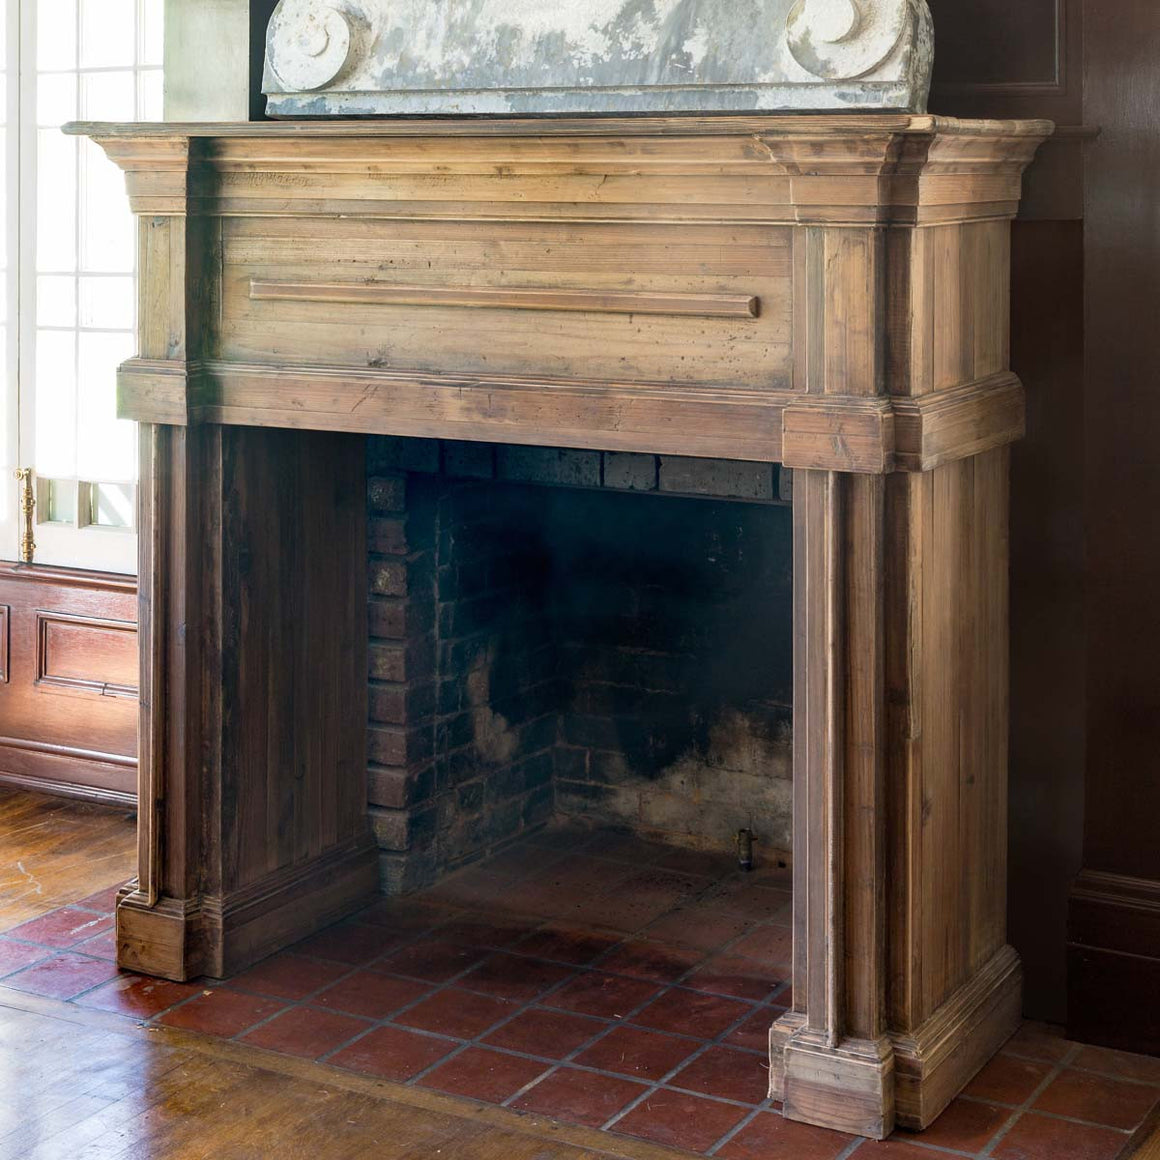 Pre-Order-11/10/19 Reclaimed Pine Fireplace Mantel